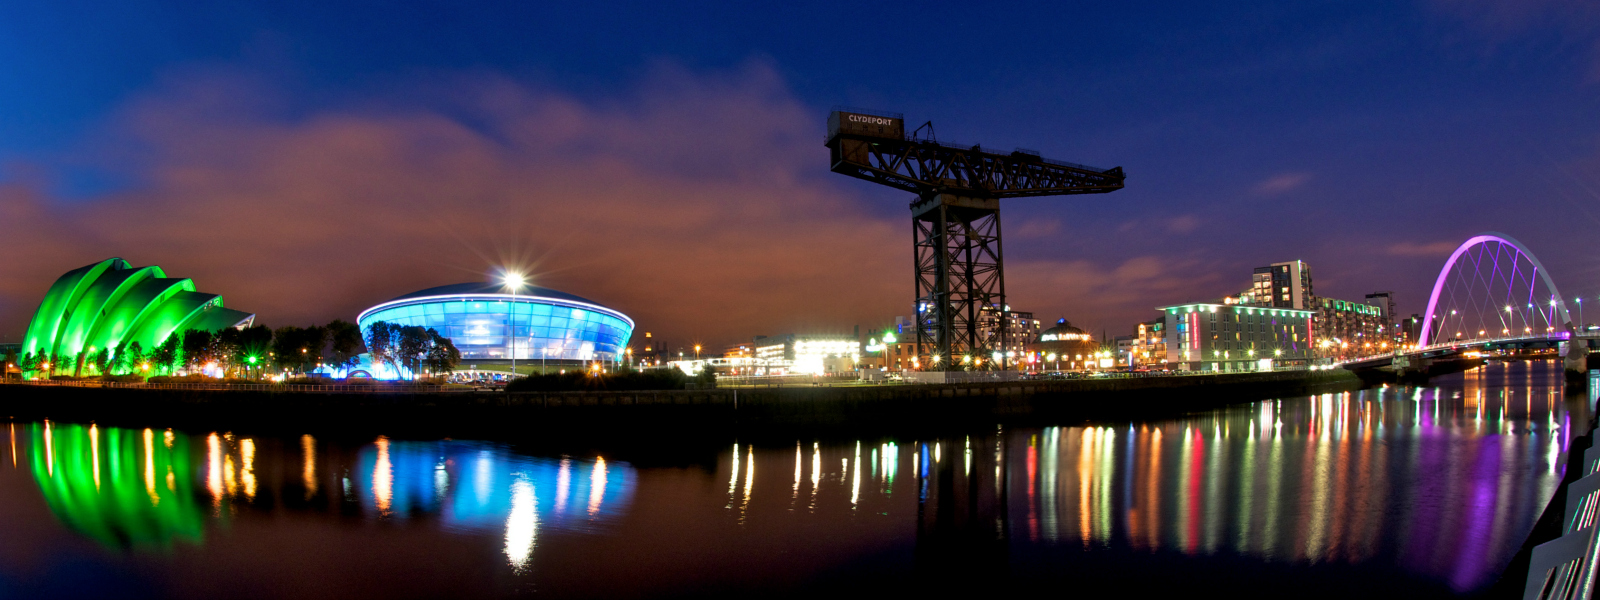 Glasgow at night, with hydro and Finnieston Crane.